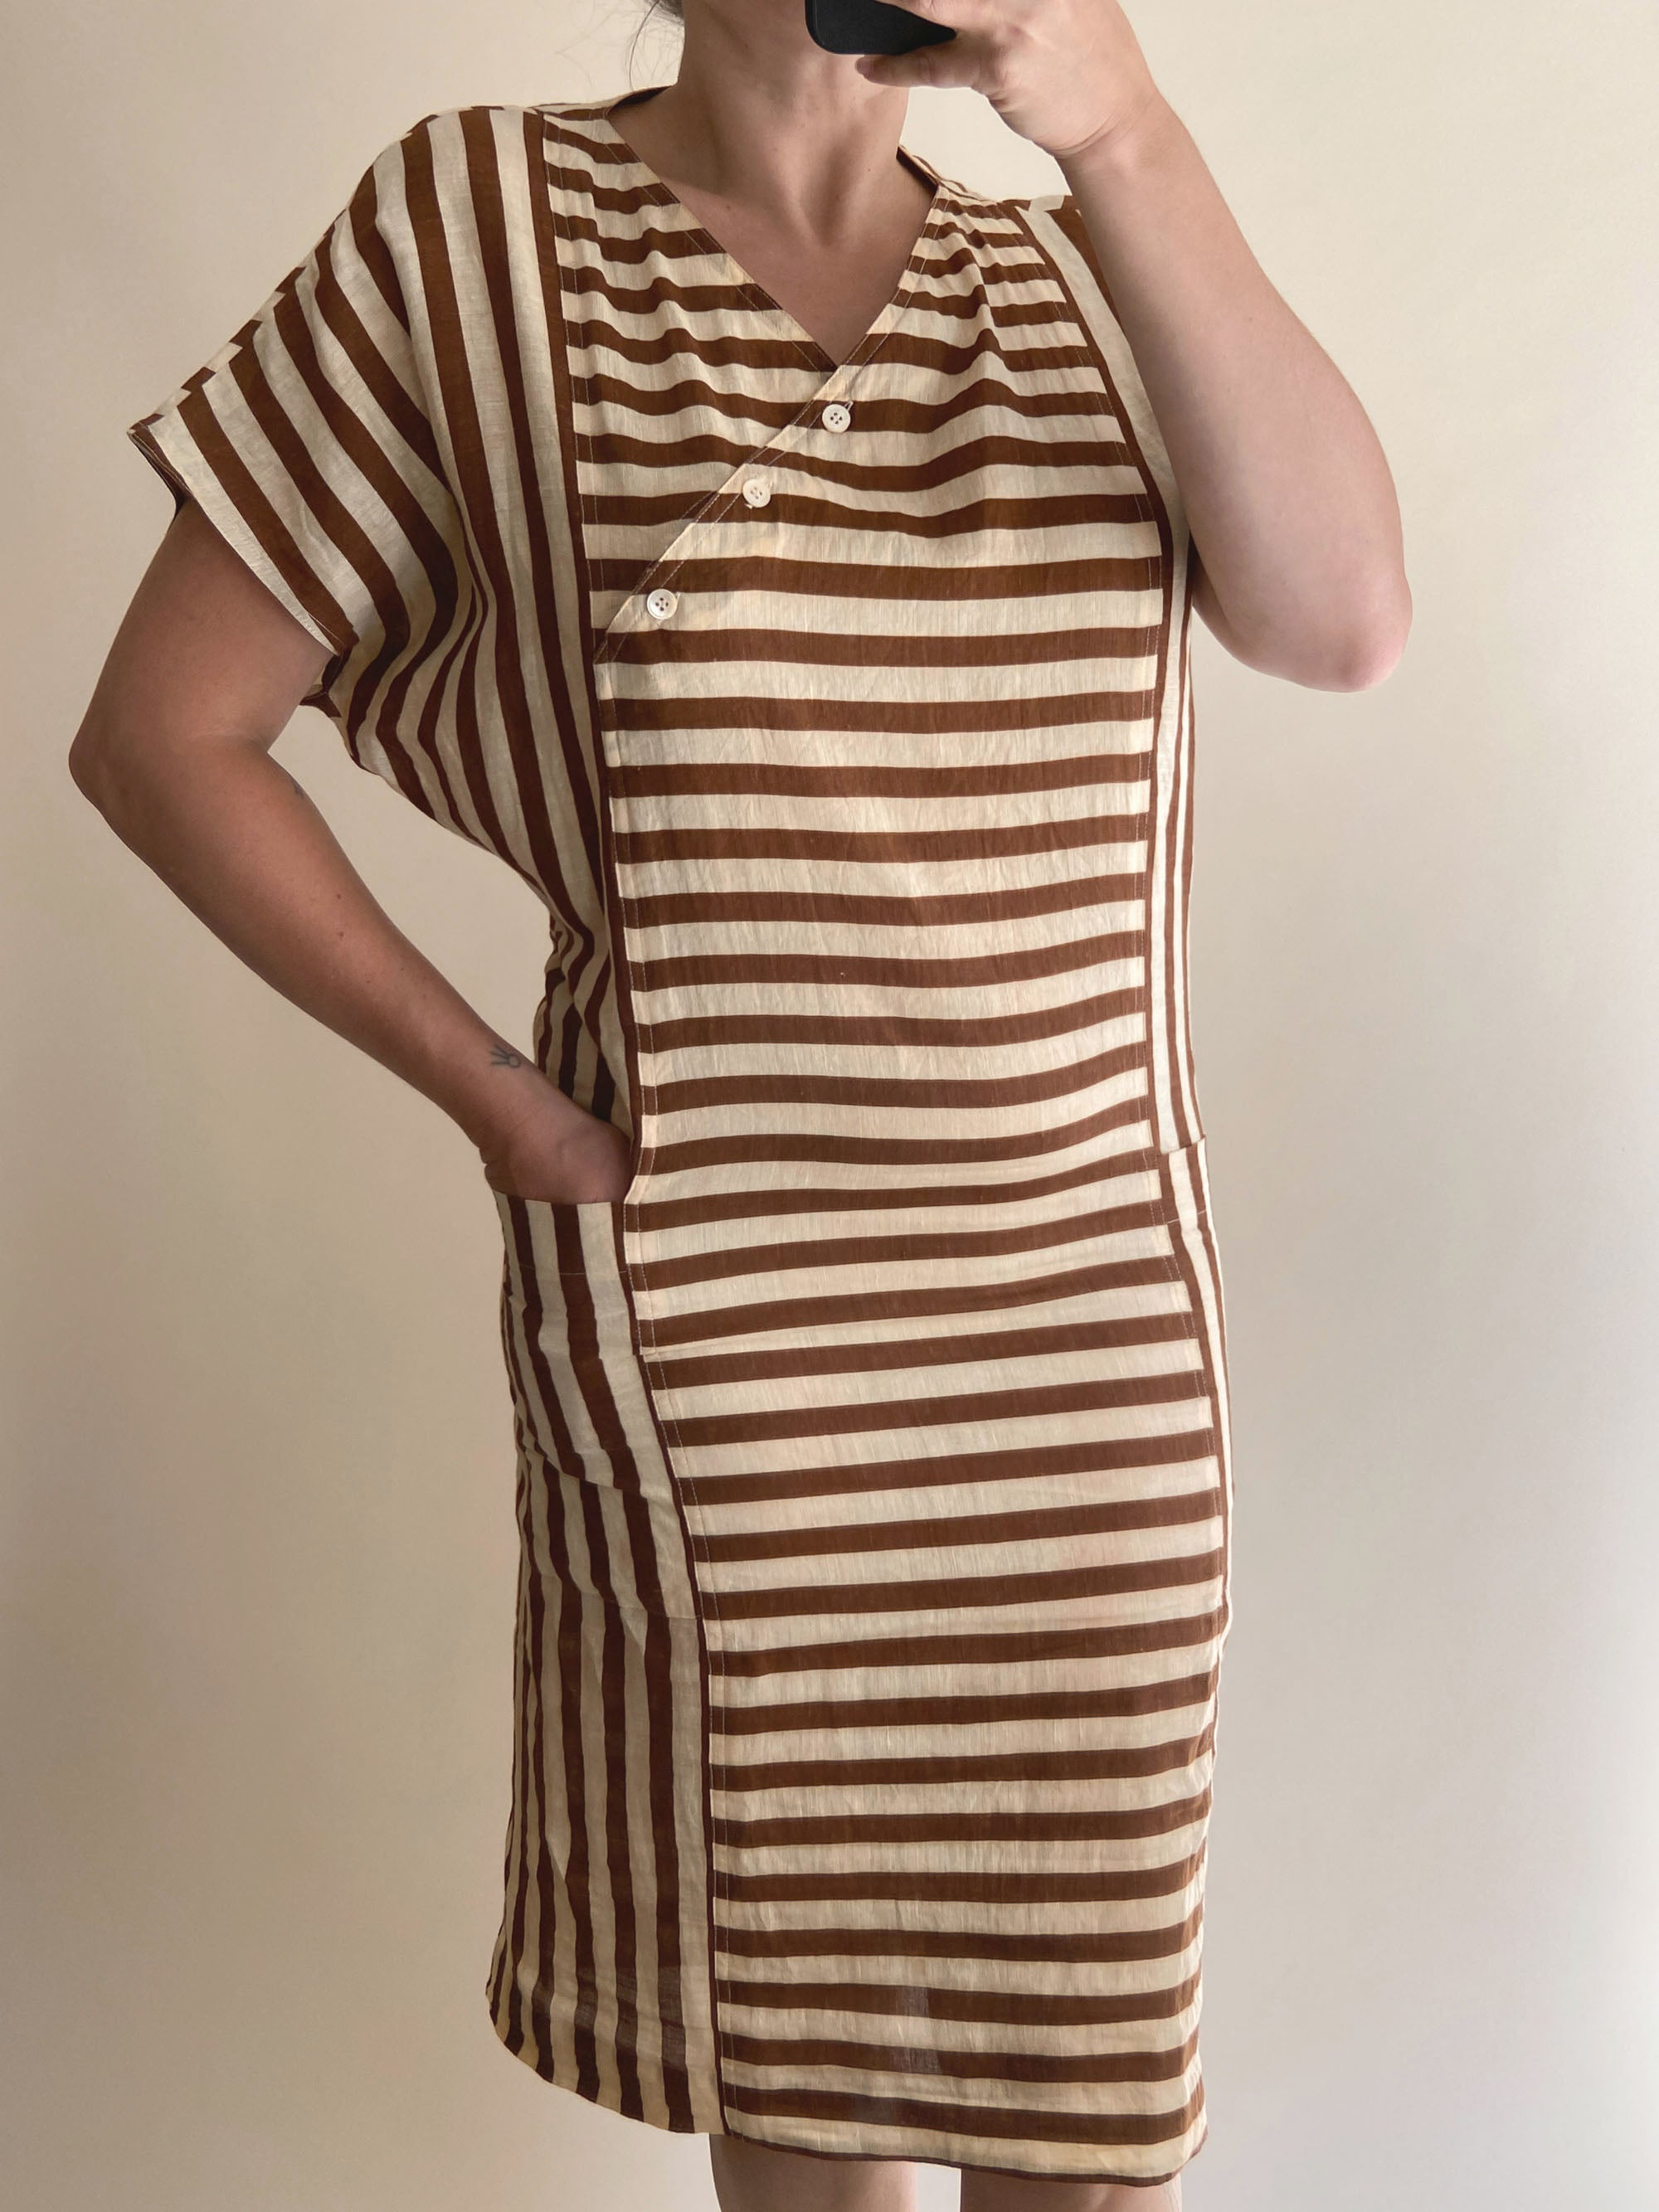 1980s Striped Linen Sheath Dress